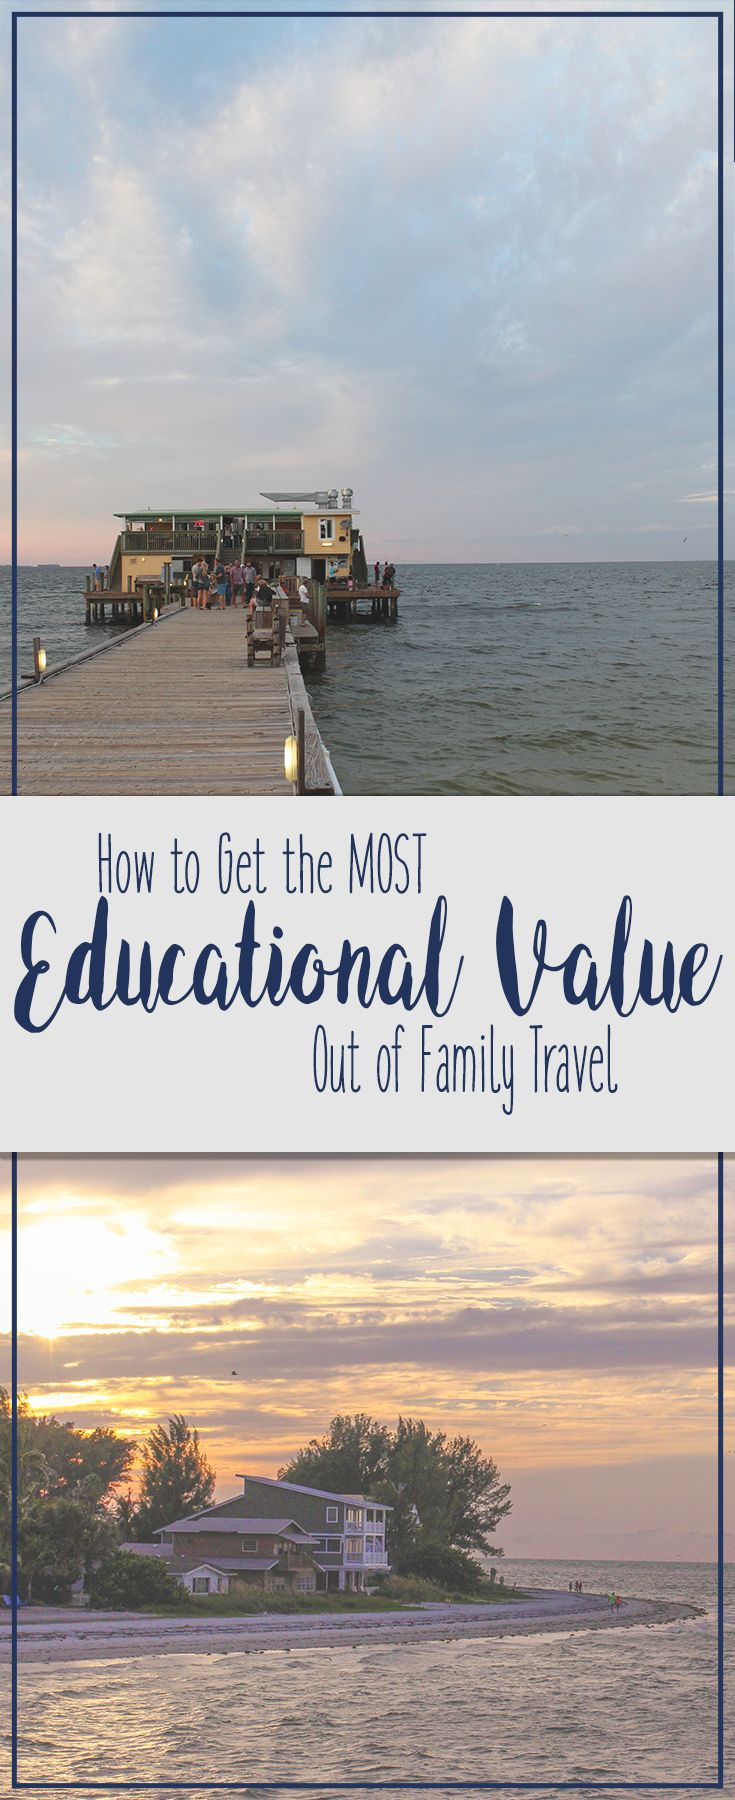 5 Reasons Why Traveling Is the Best Education